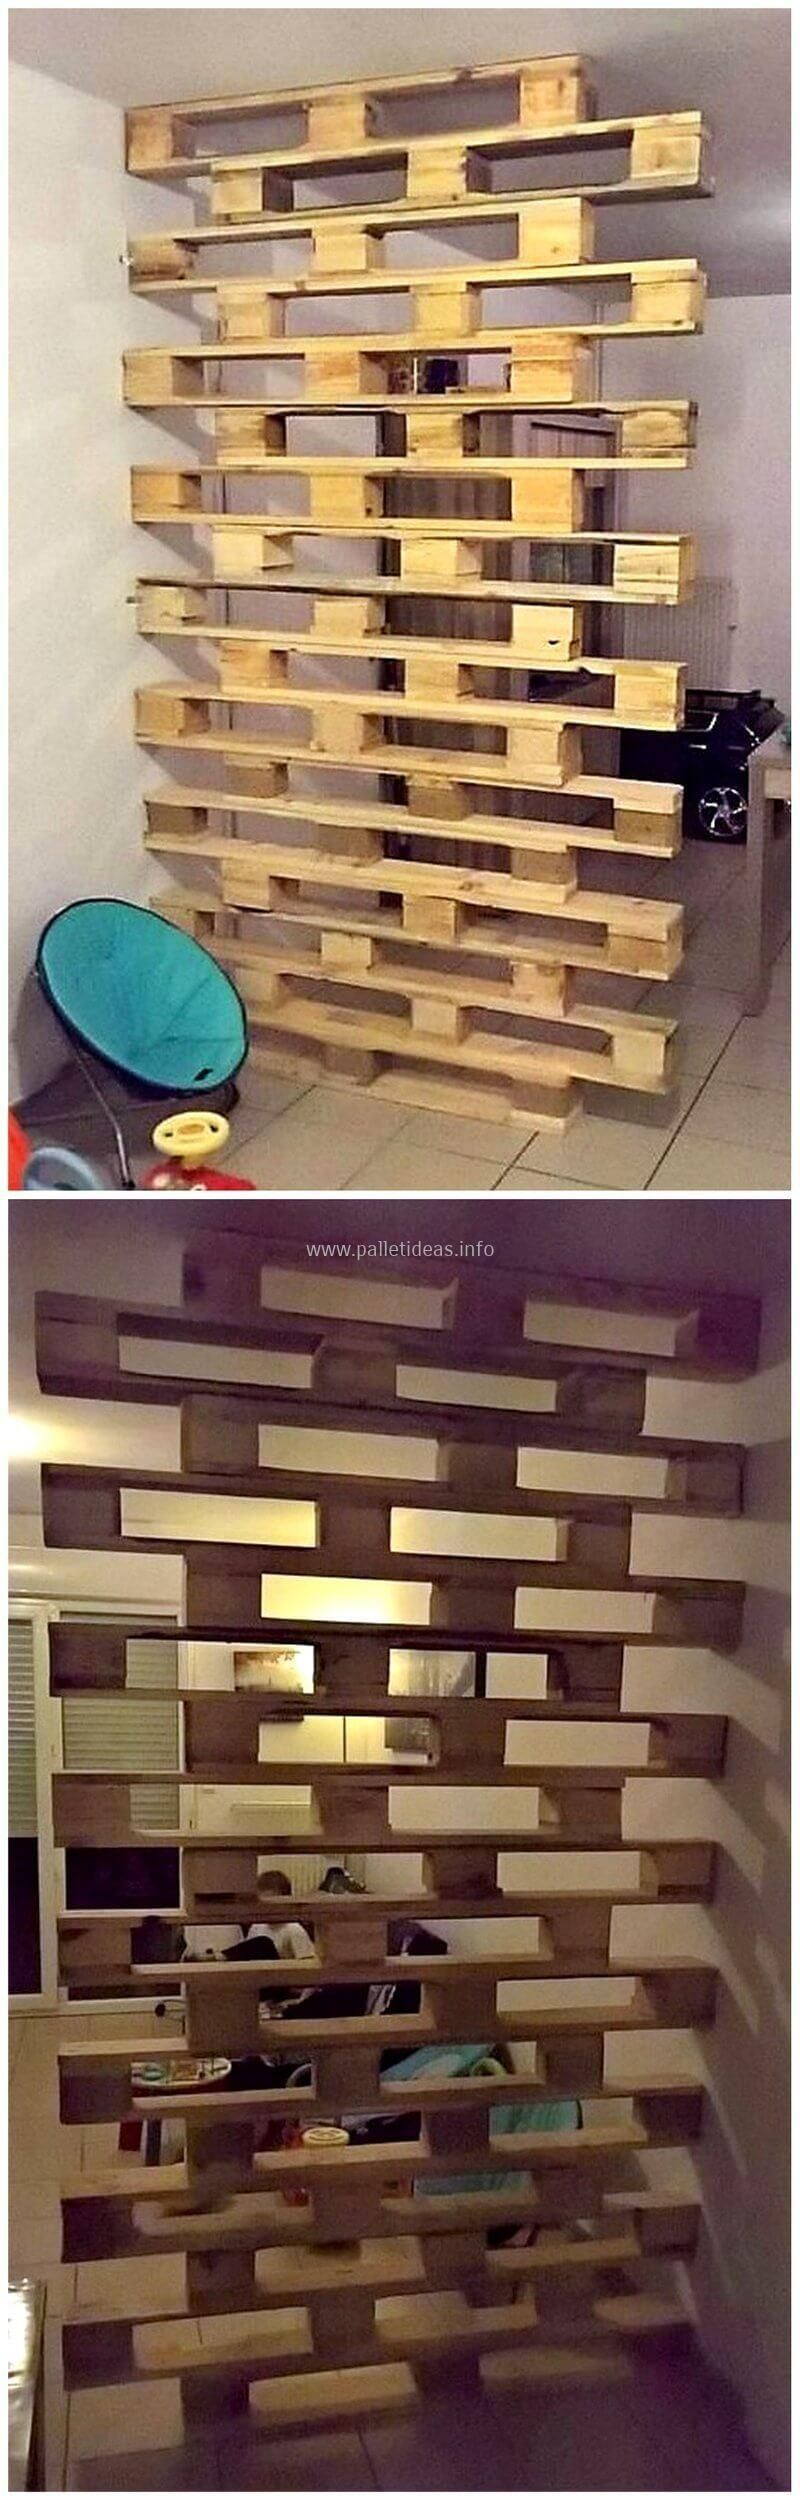 Room divider idea diy woodworking pinterest divider room and